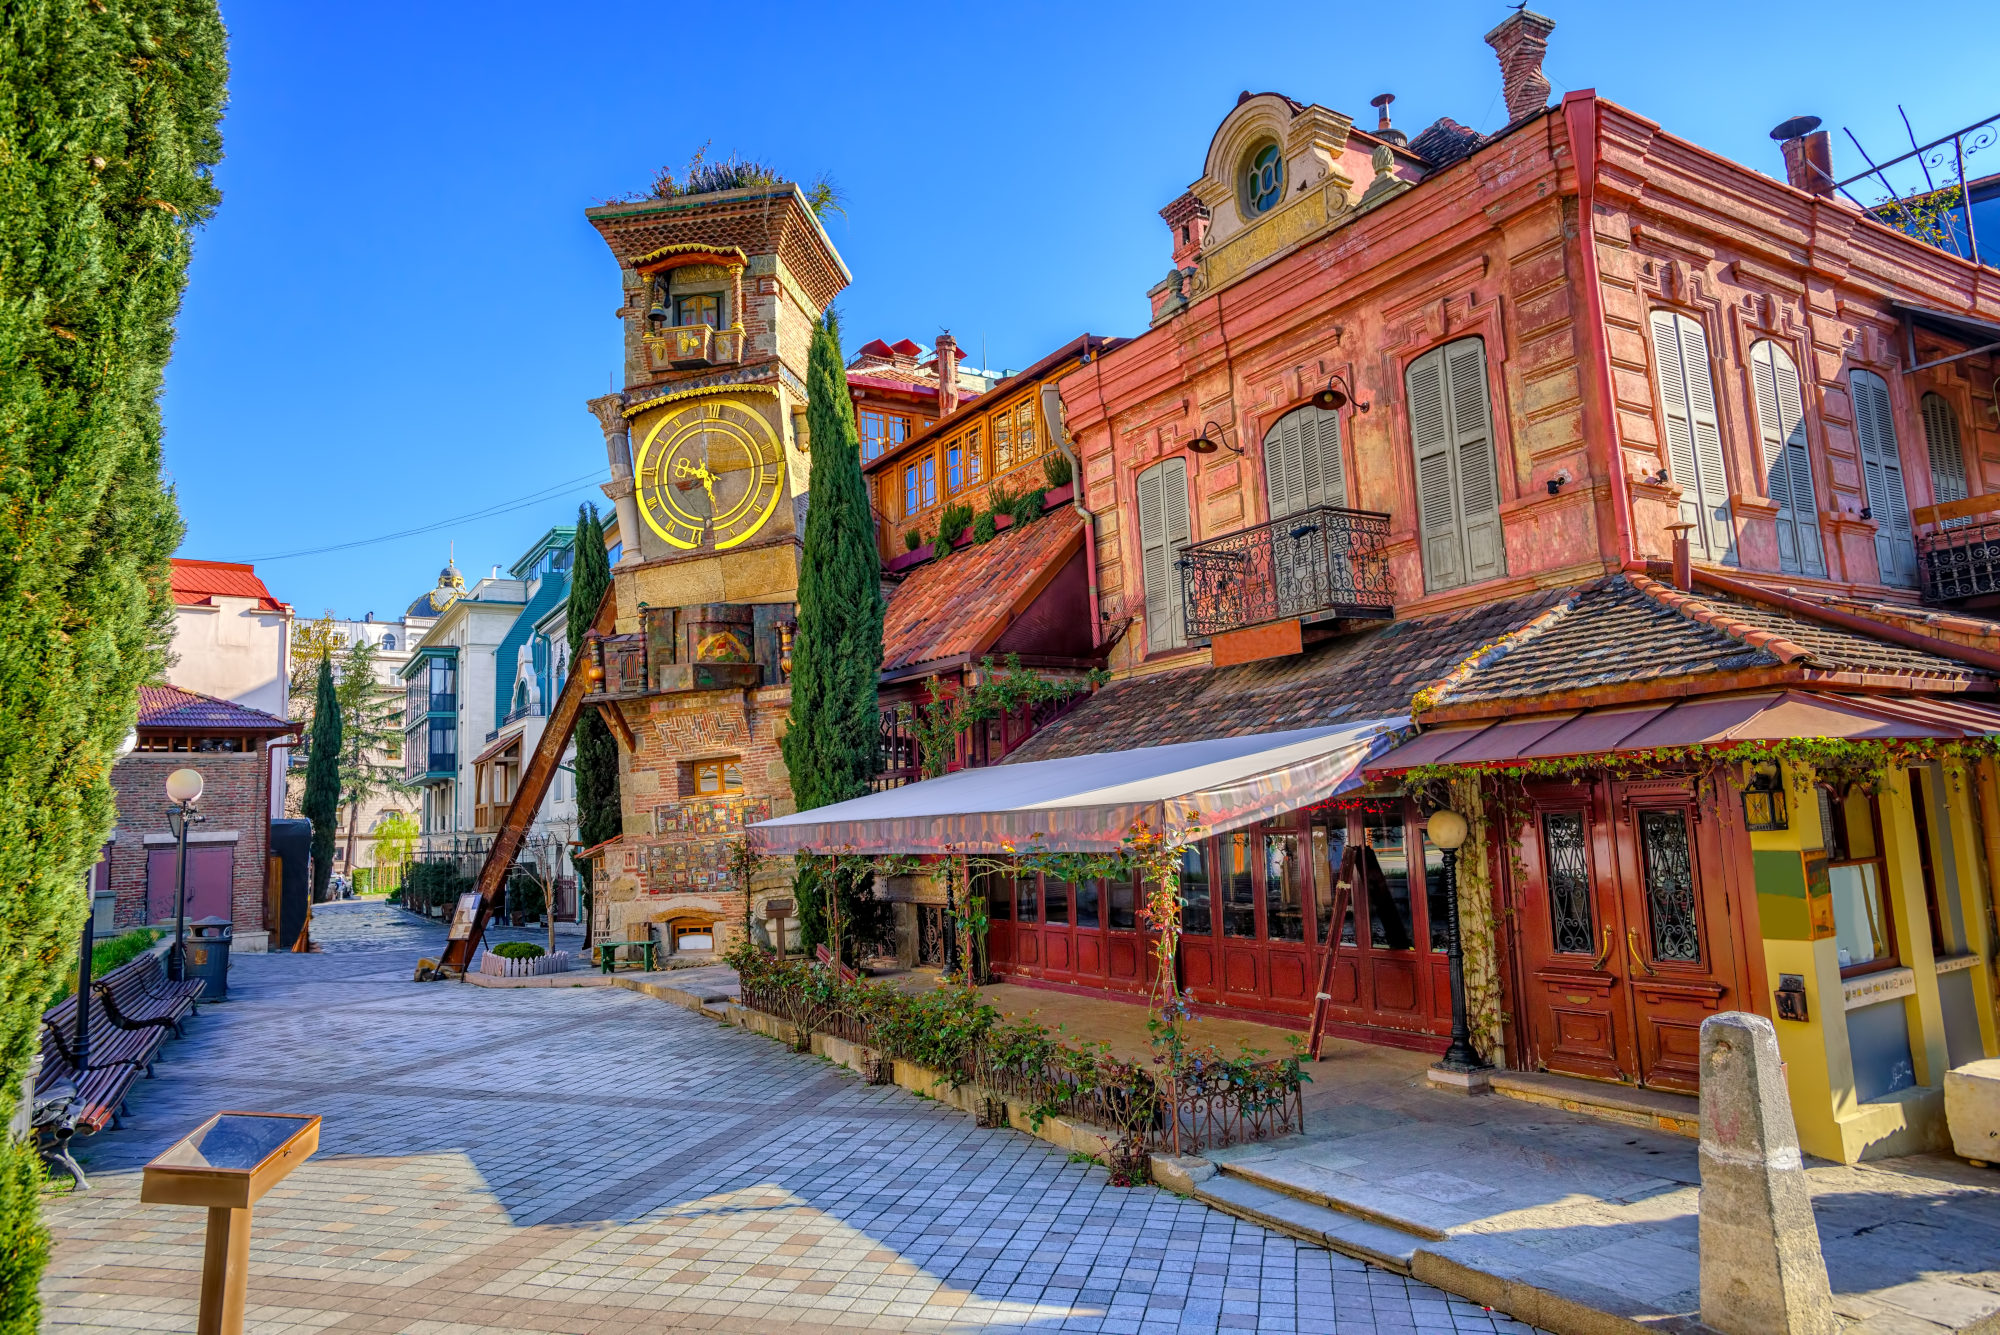 The old town of Tbilisi